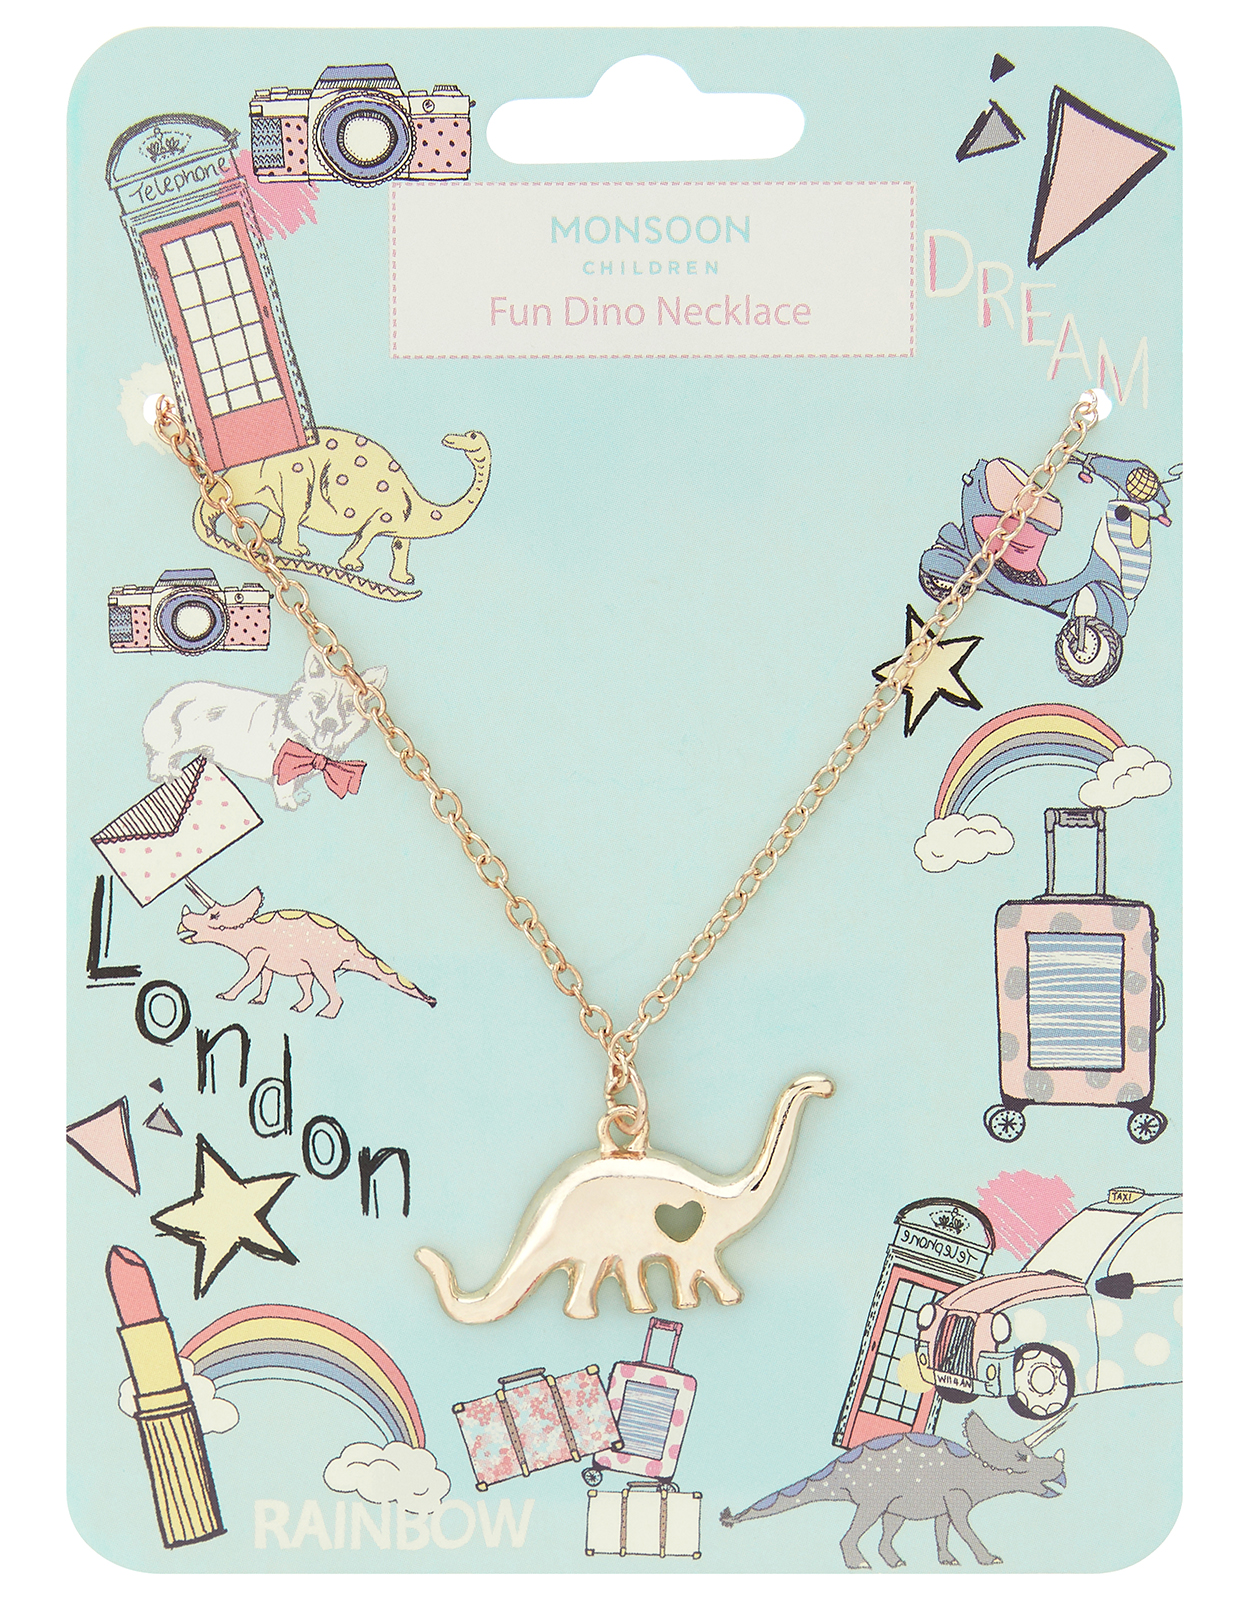 Monsoon Fun Dino Necklace